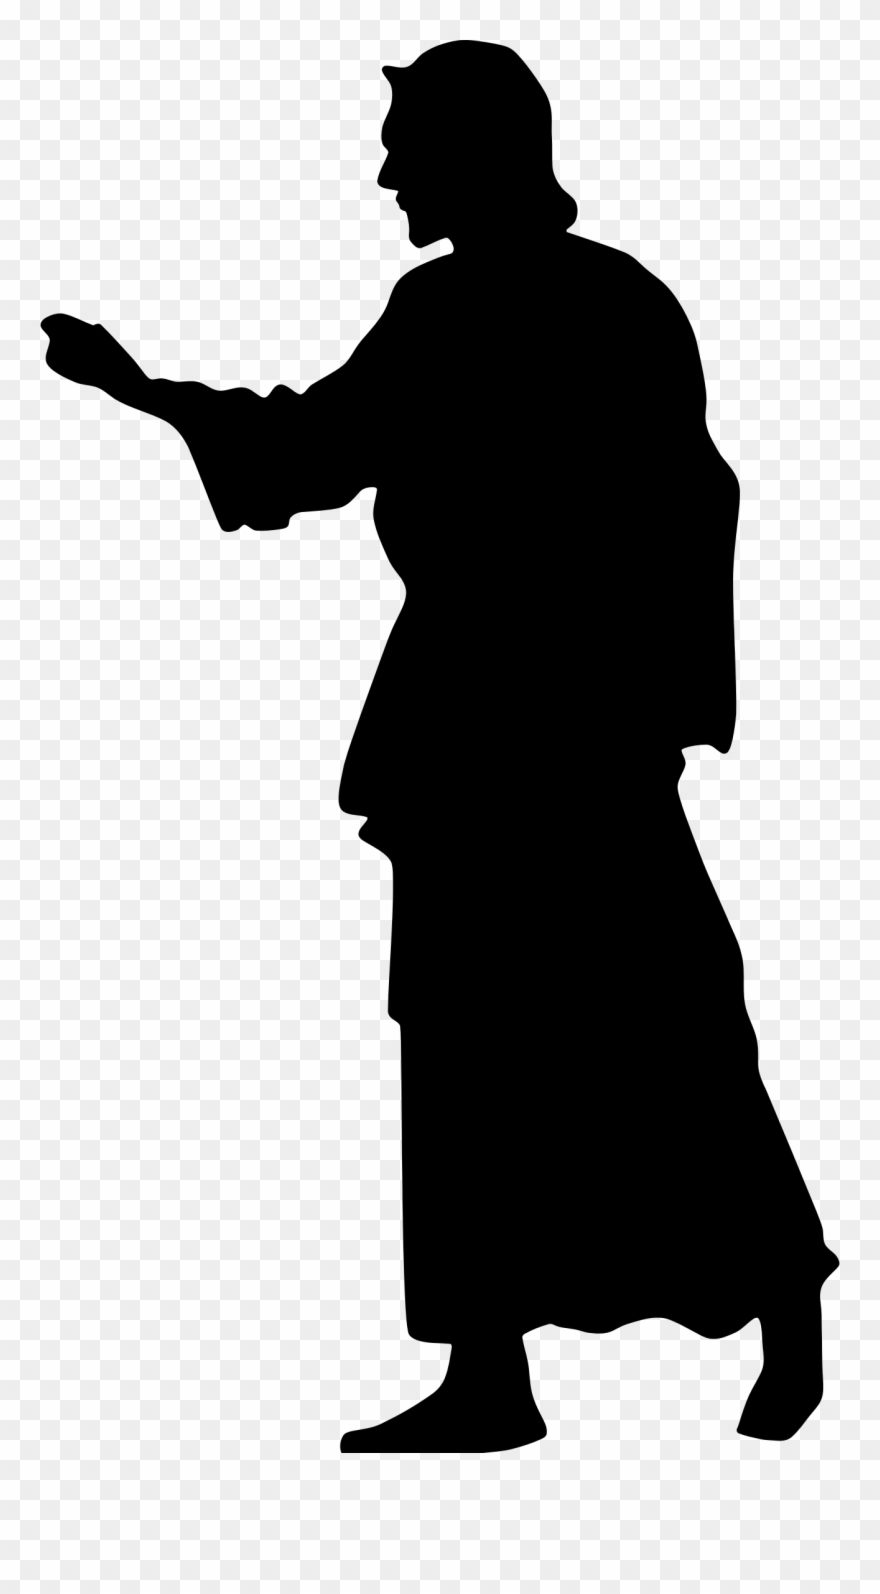 Christ silhouette clipart image freeuse stock Big Image - Jesus Christ Silhouette Png Clipart (#72803) - PinClipart image freeuse stock